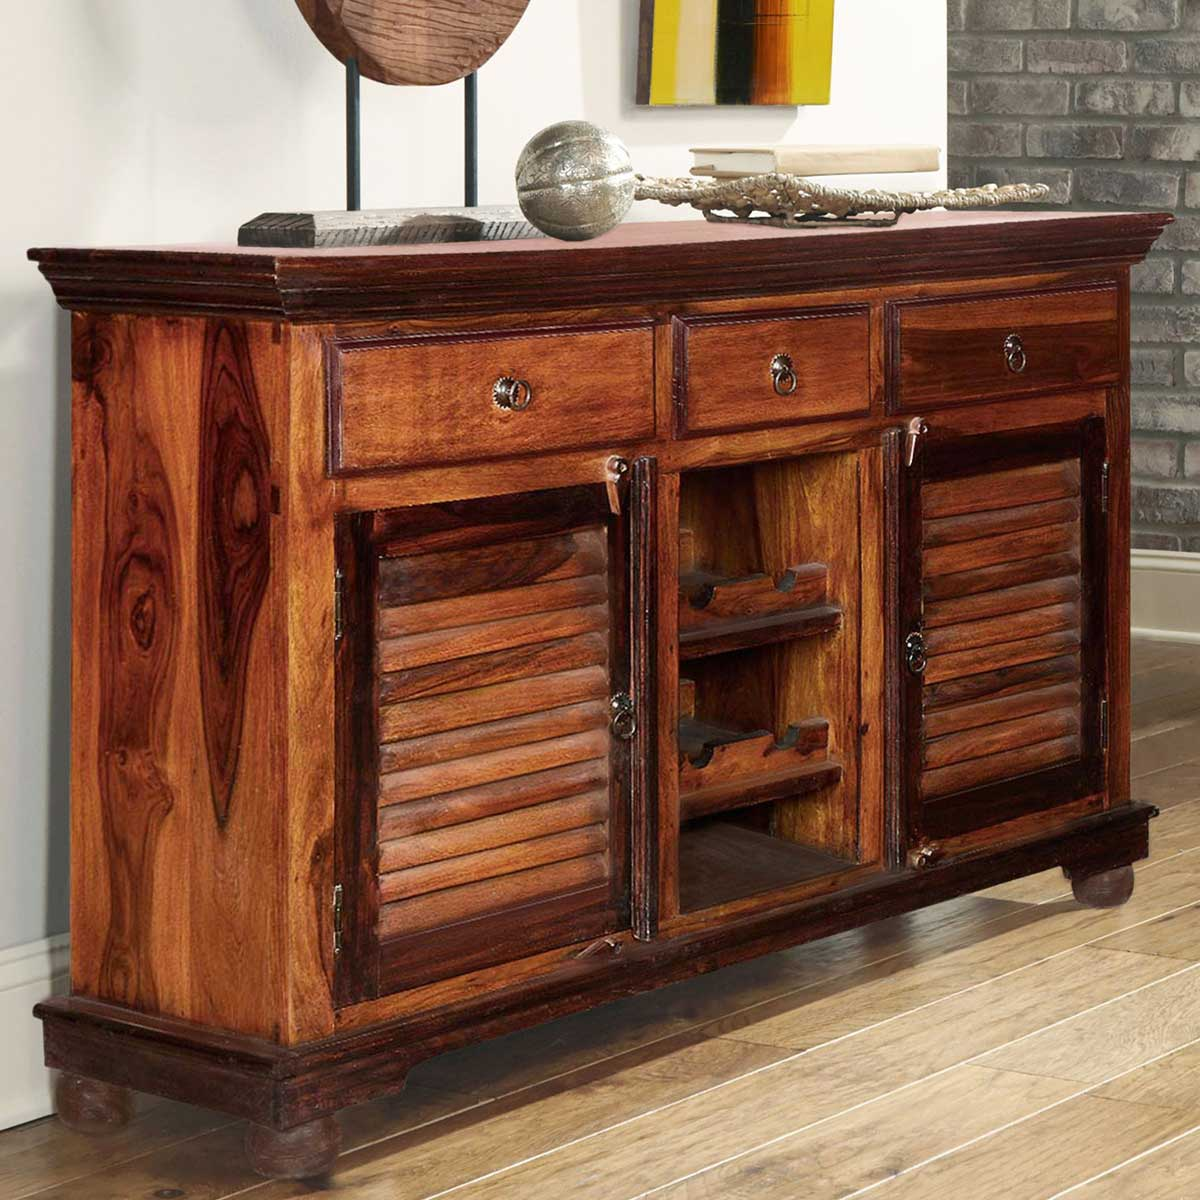 Buffet Sideboard With Wine Rack Shaker Rustic Solid Wood 3 Drawer Wine Bar Sideboard Cabinet